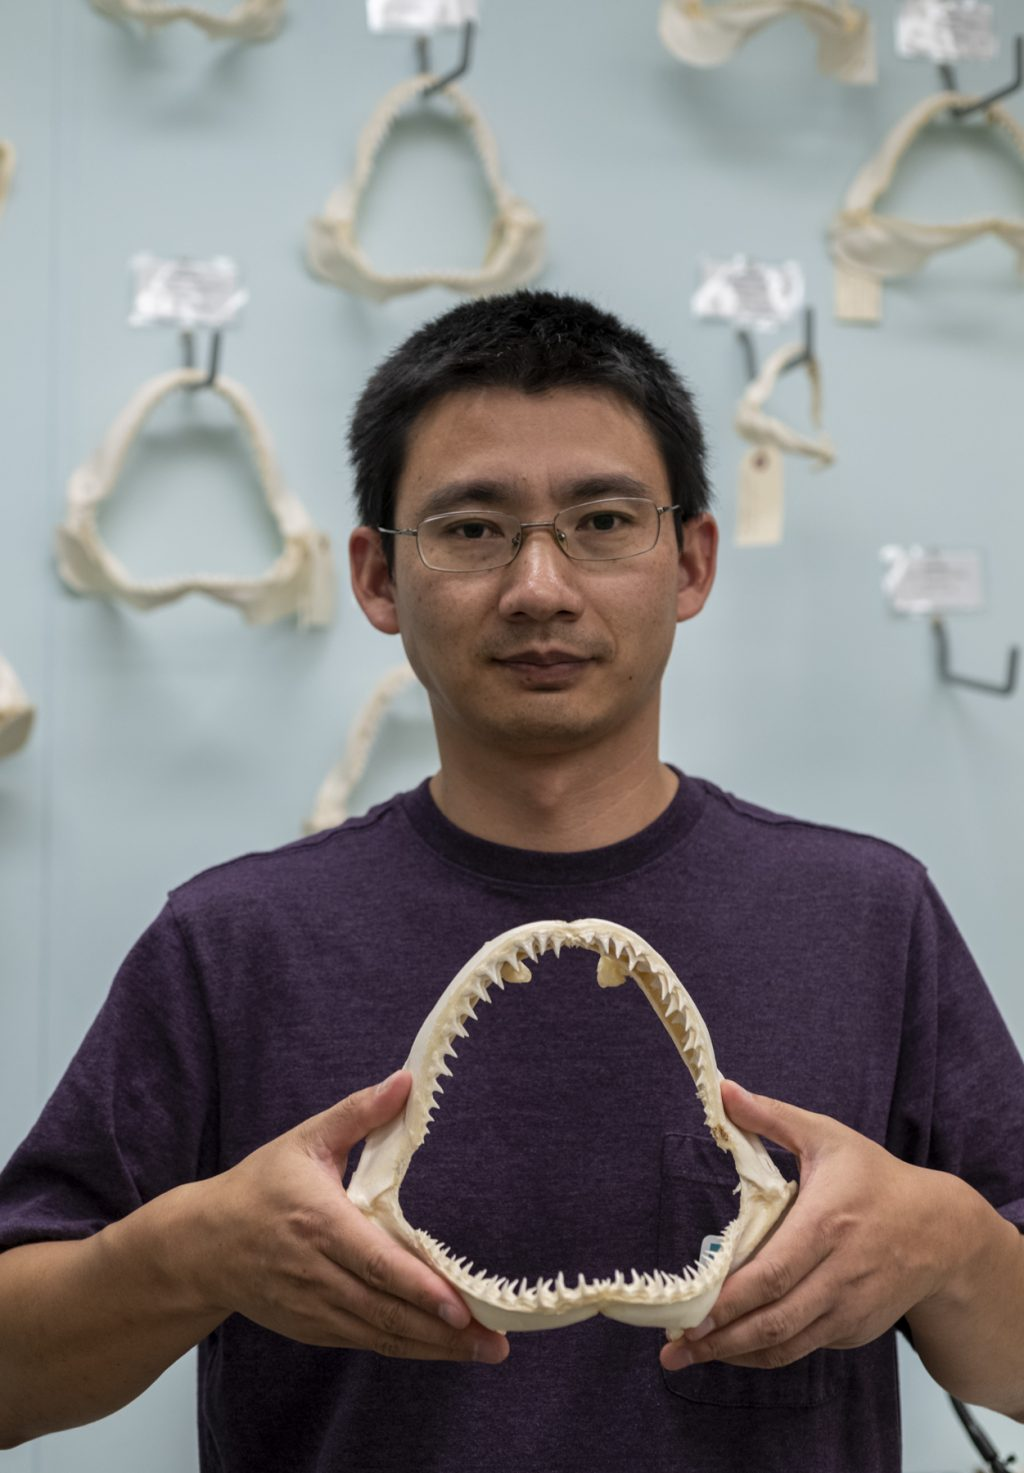 man in purple shirt holding shark jaws